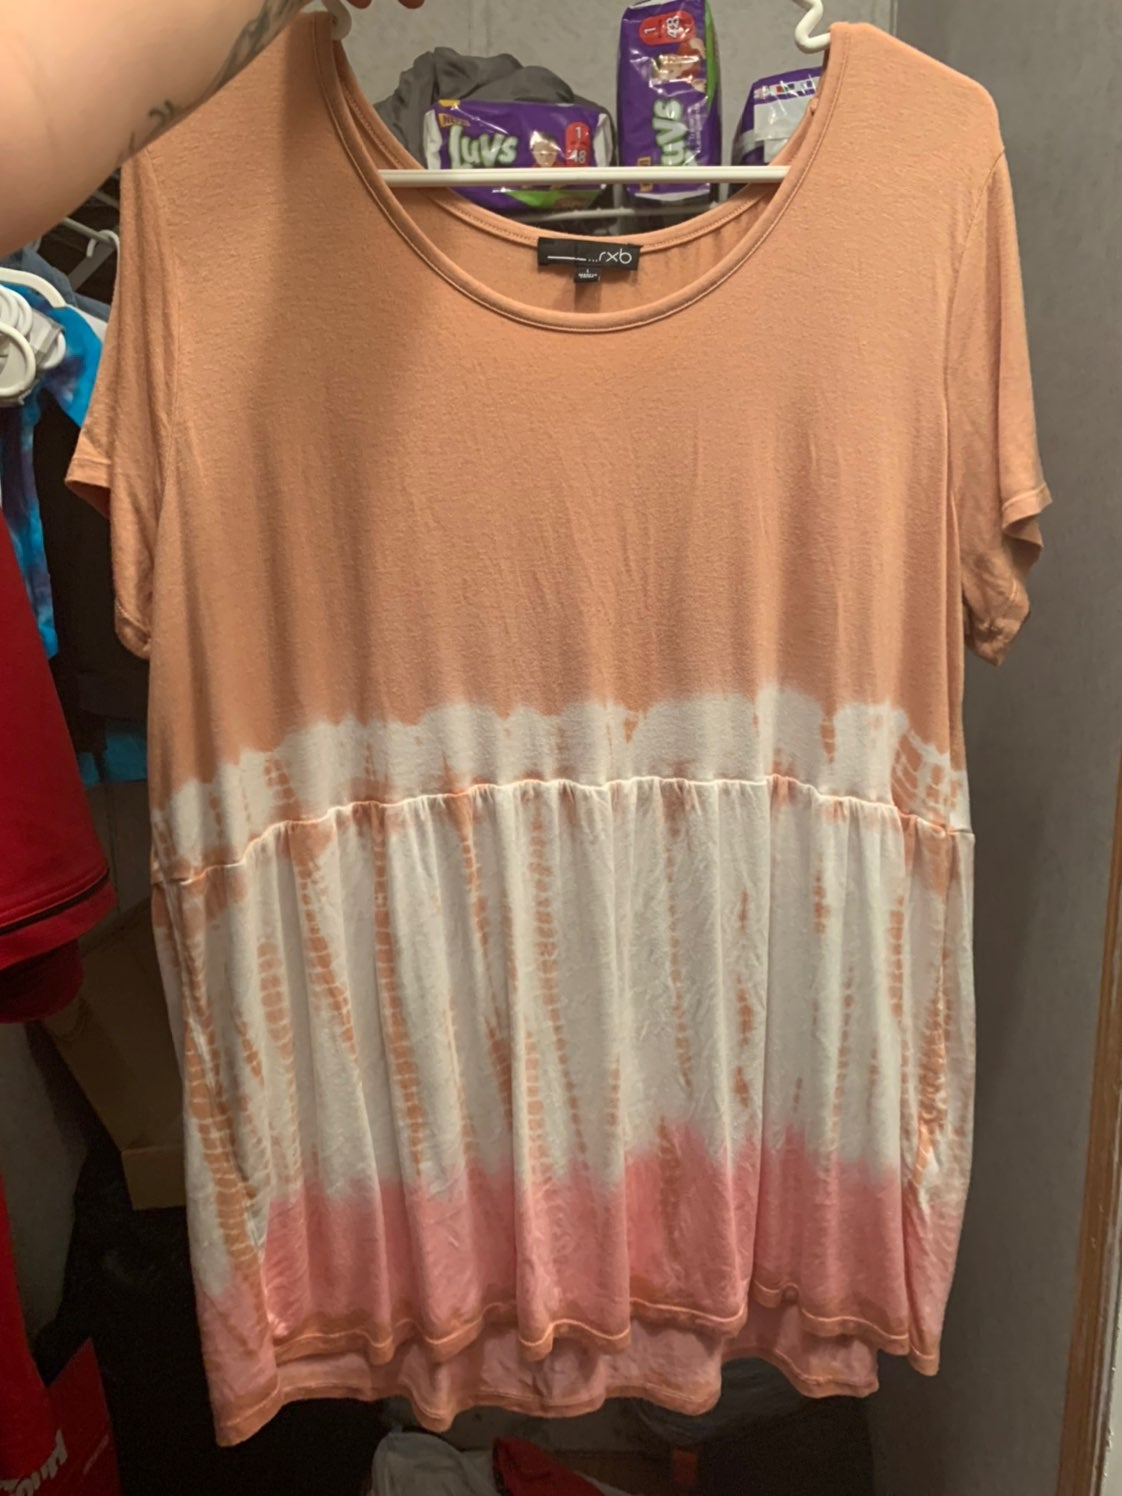 My story boutique top!